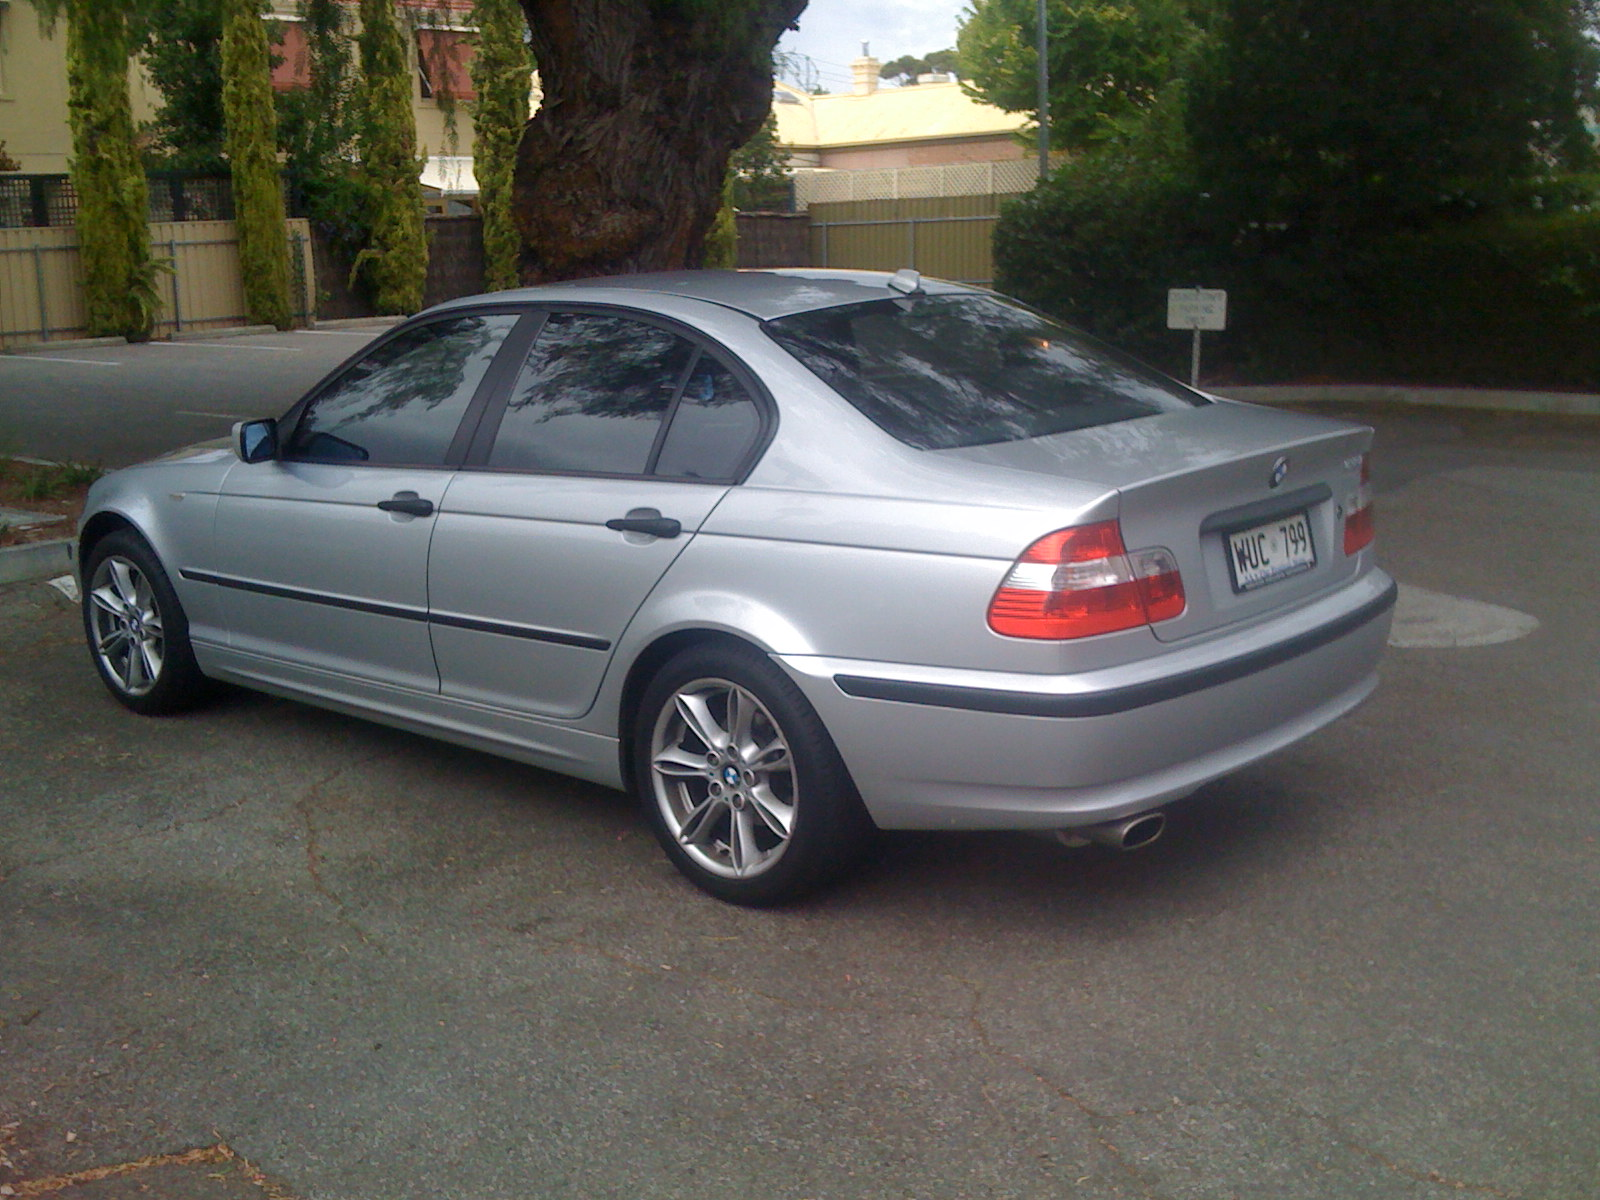 BMW 3 series 323i 2001 photo - 10